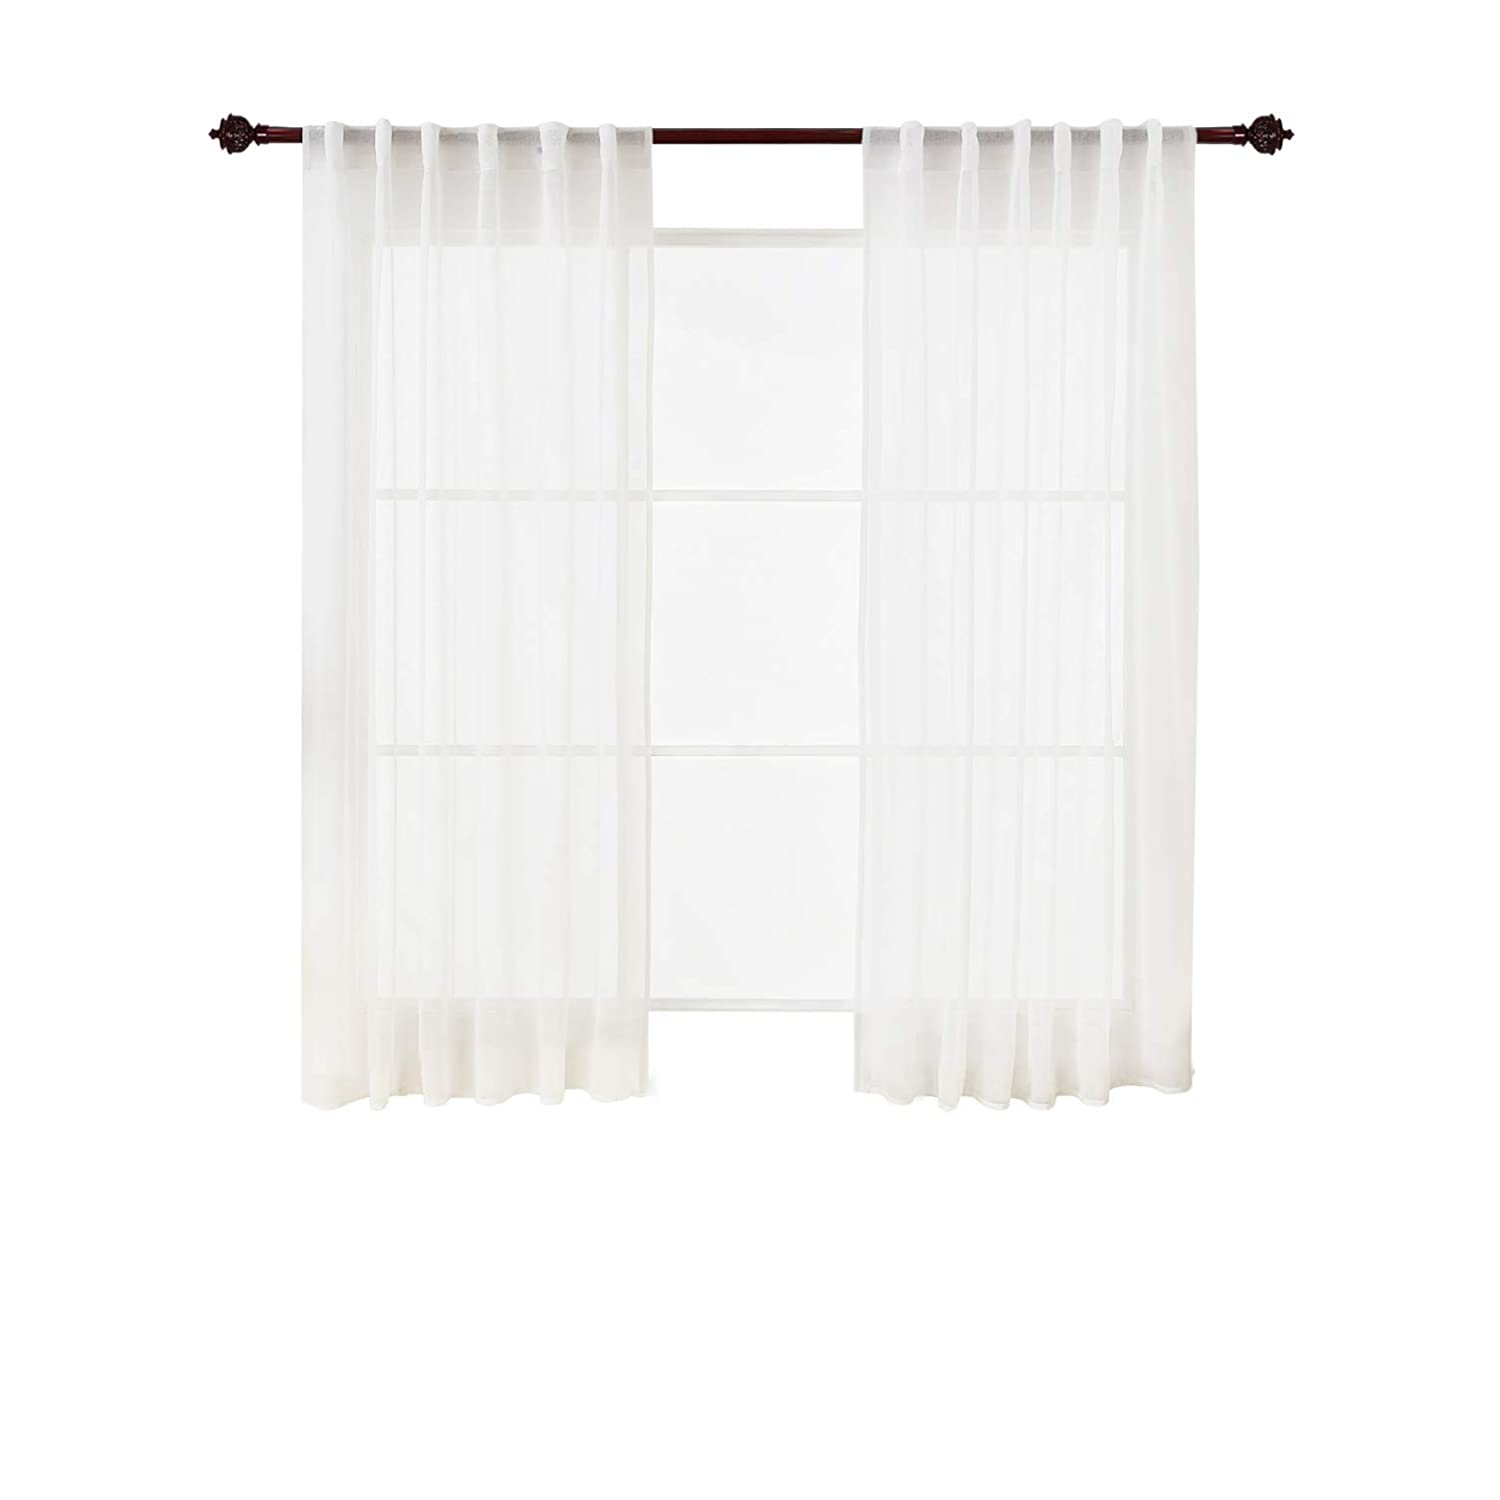 Deconovo Sheer White Curtains 84 Inches Long Rod Pocket Linen Look Transparent Voile Curtains for Bedroom 38W x 84L White 2 Panels